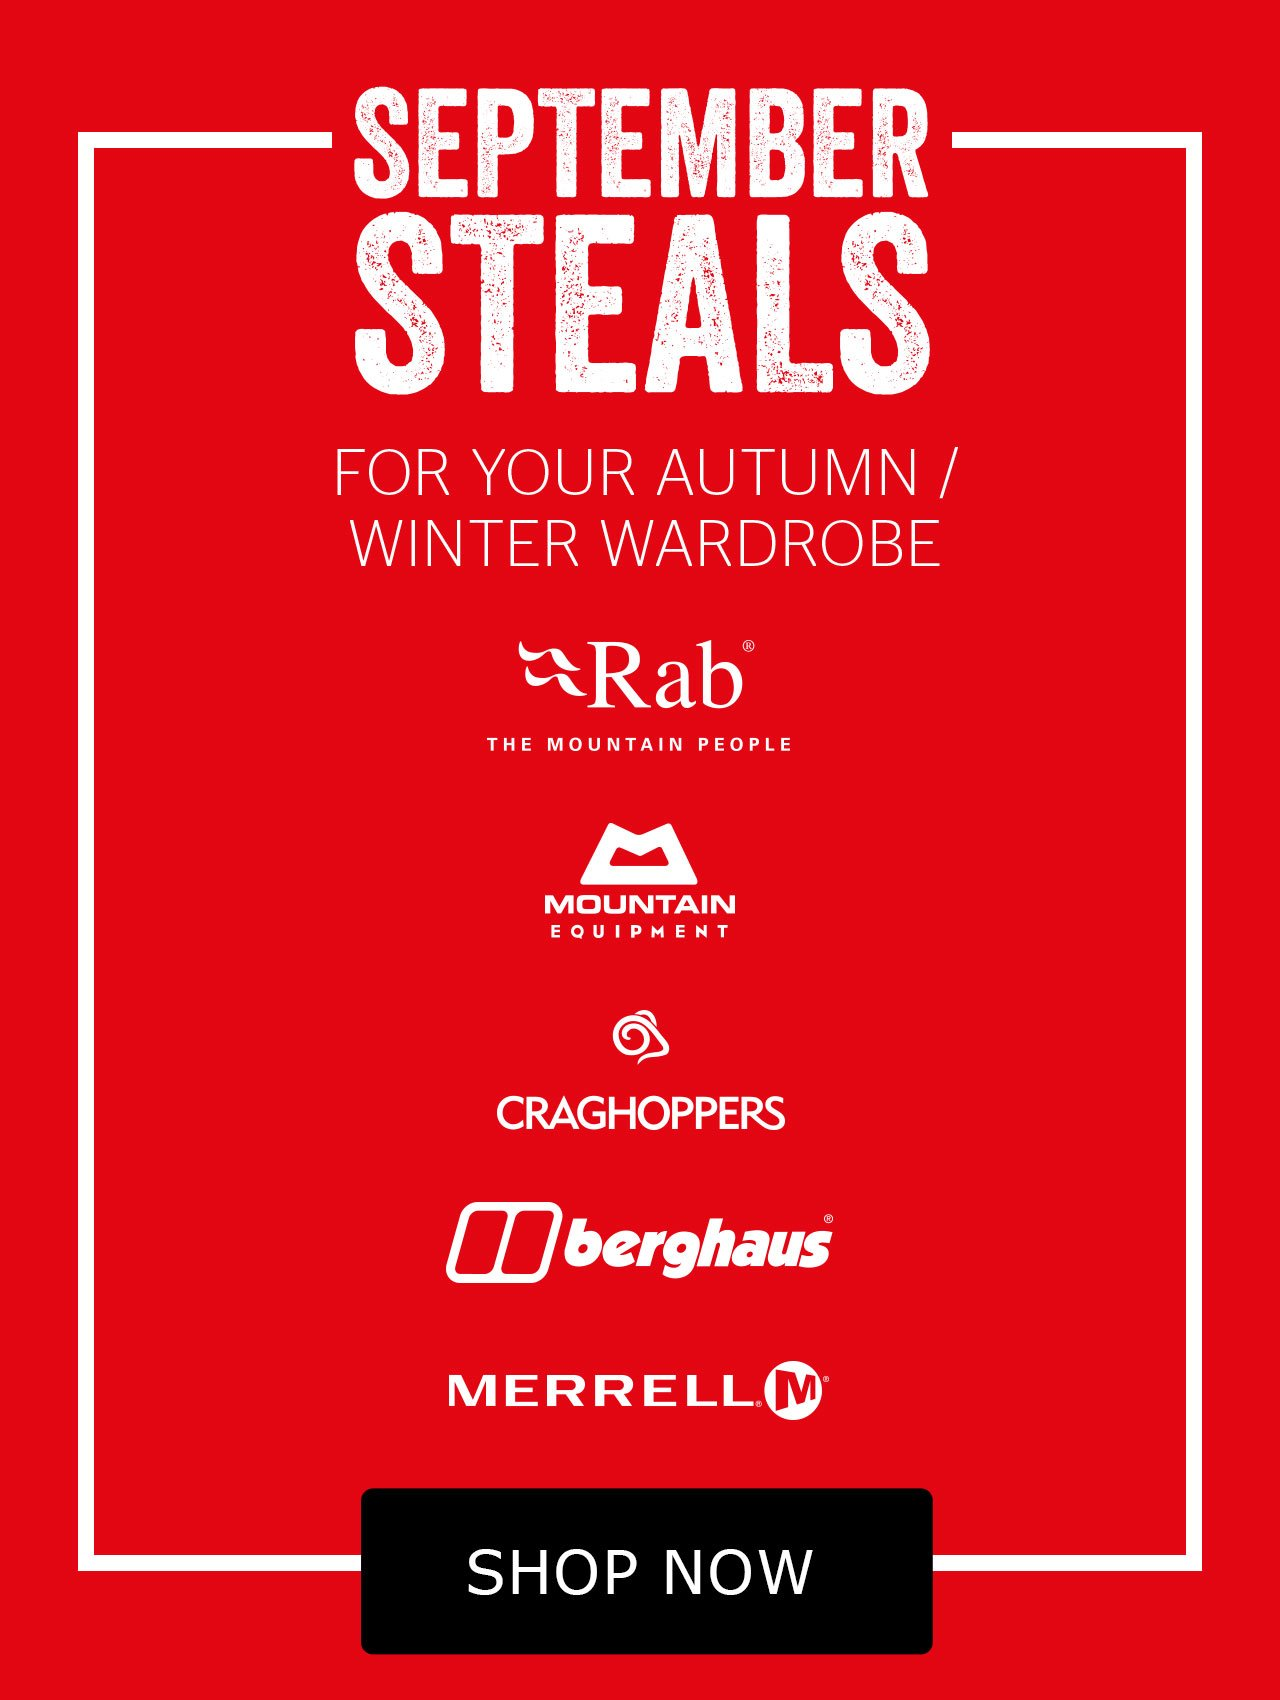 September steals for your autumn/winter wardrobe - get them before they're gone